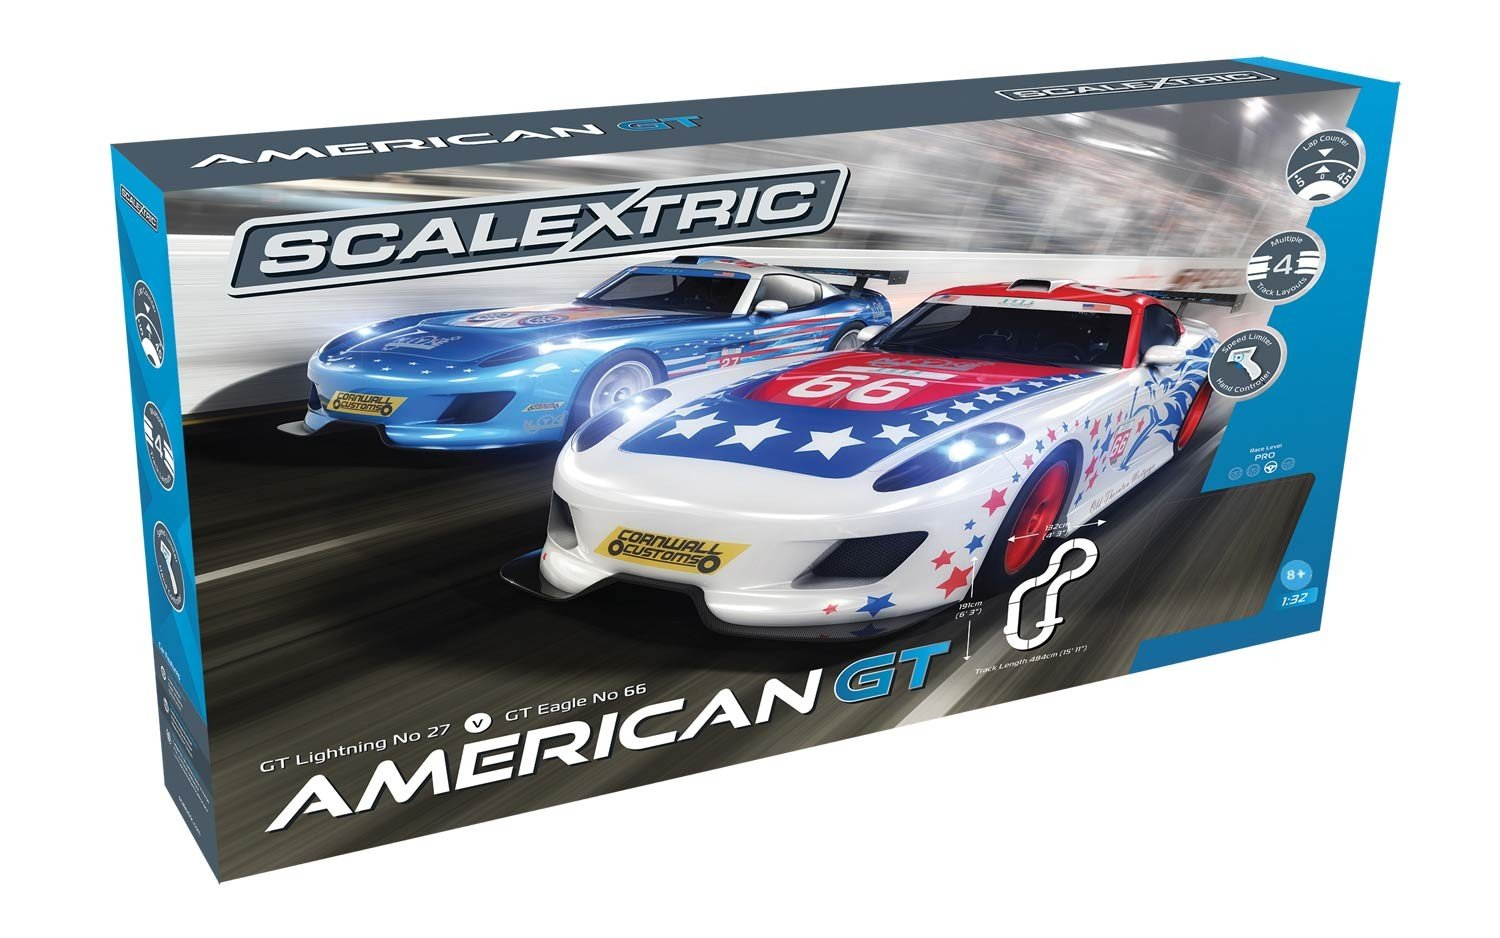 Scalextric America GT 1:32 Slot Car Race Track C1361T Playset by Scalextric